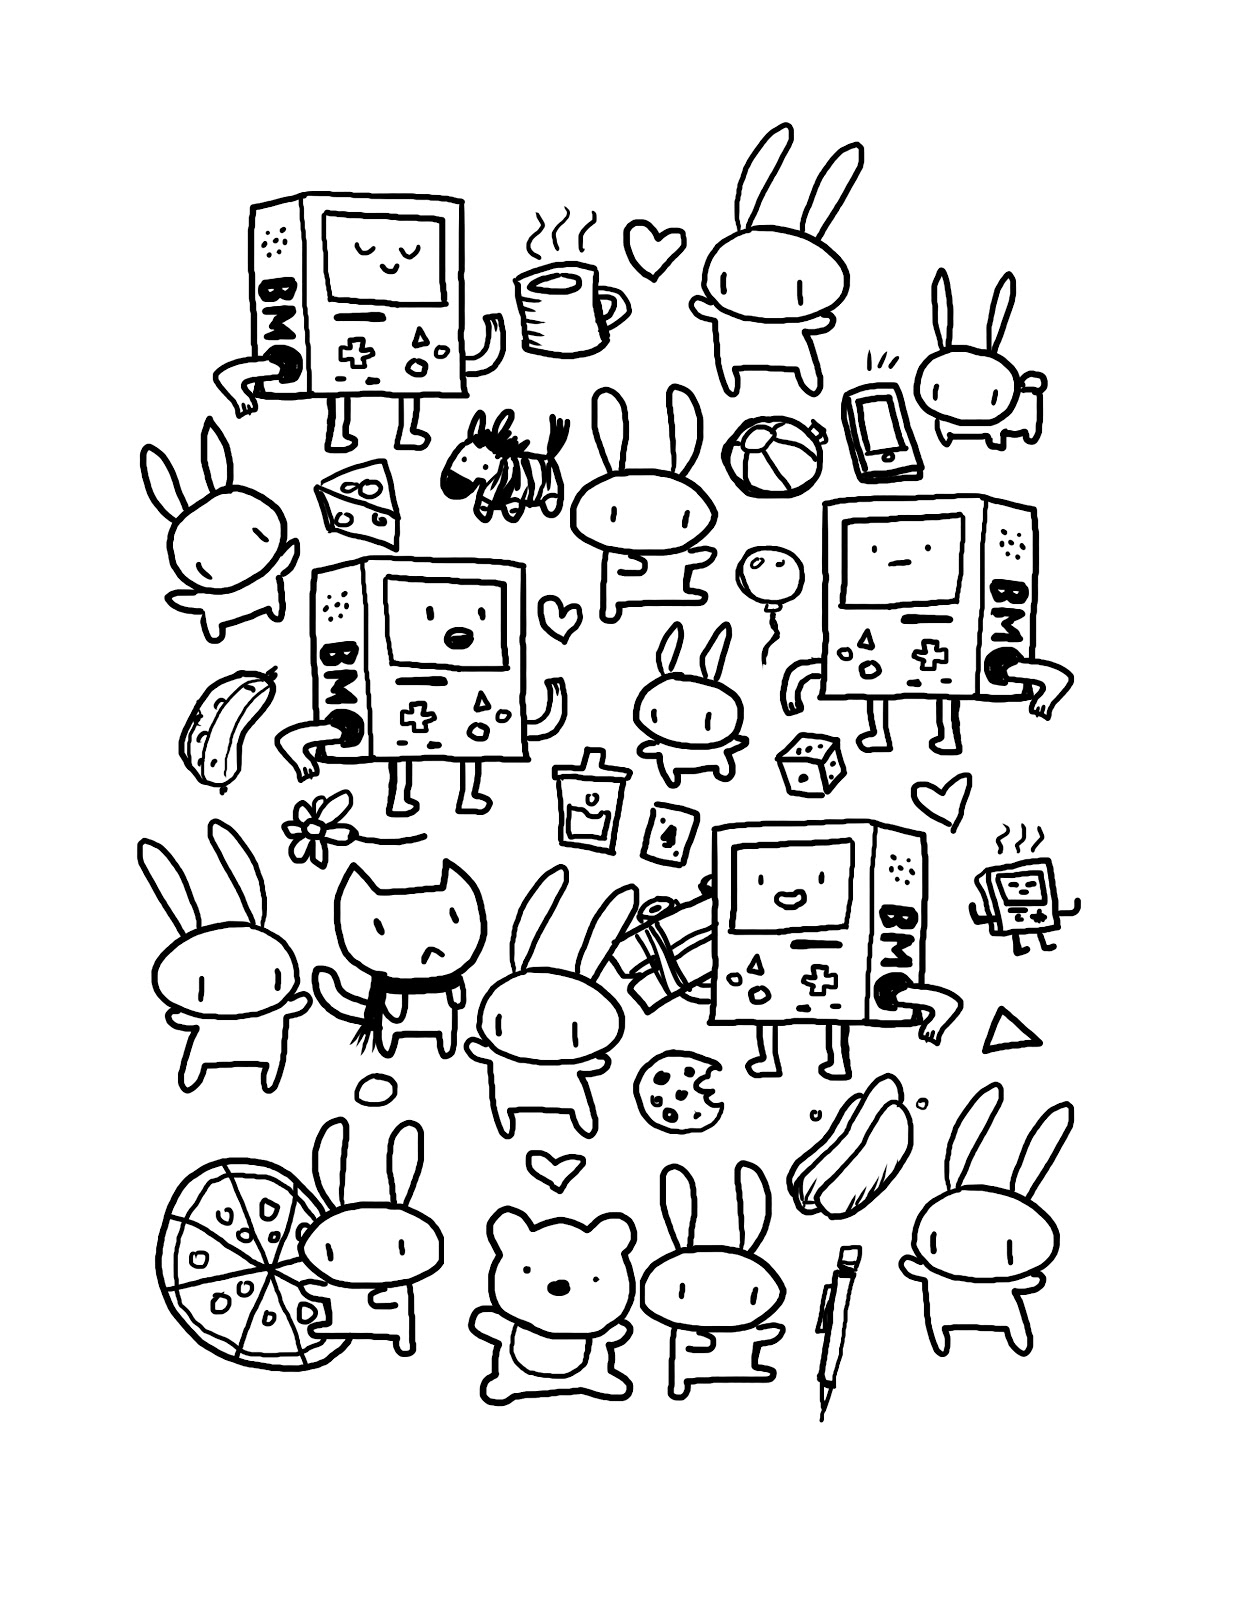 coloring pages of cute things 25 cute baby animal coloring pages ideas we need fun of pages things coloring cute